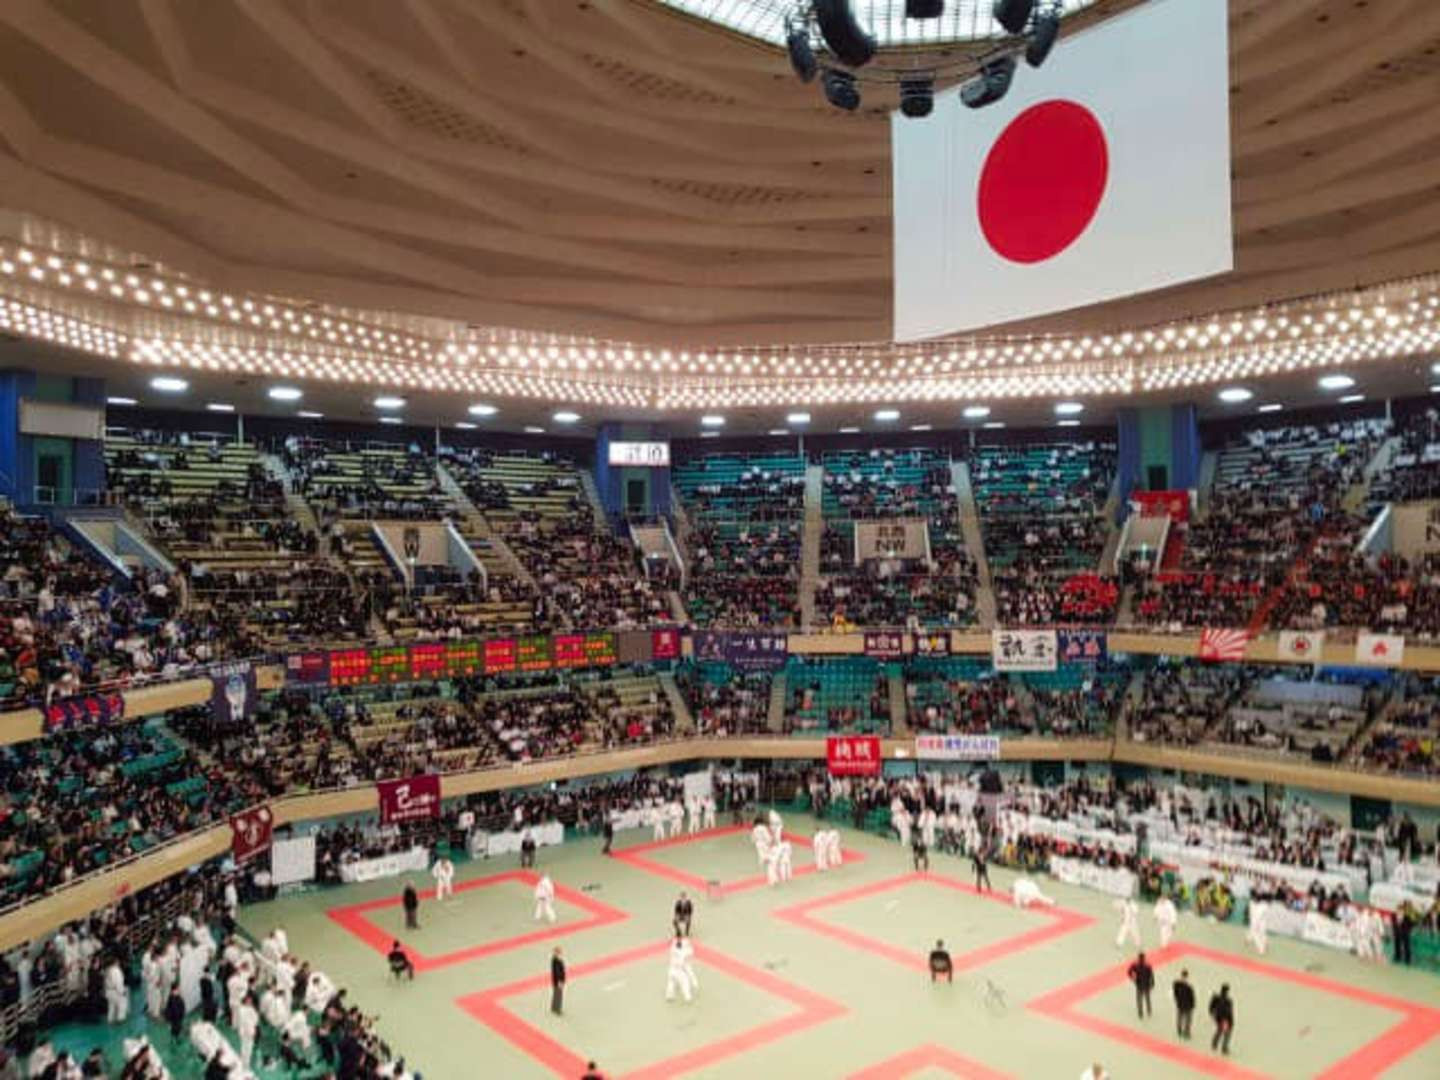 Judo comes home with IJF World Championships in Tokyo as Olympic countdown quickens